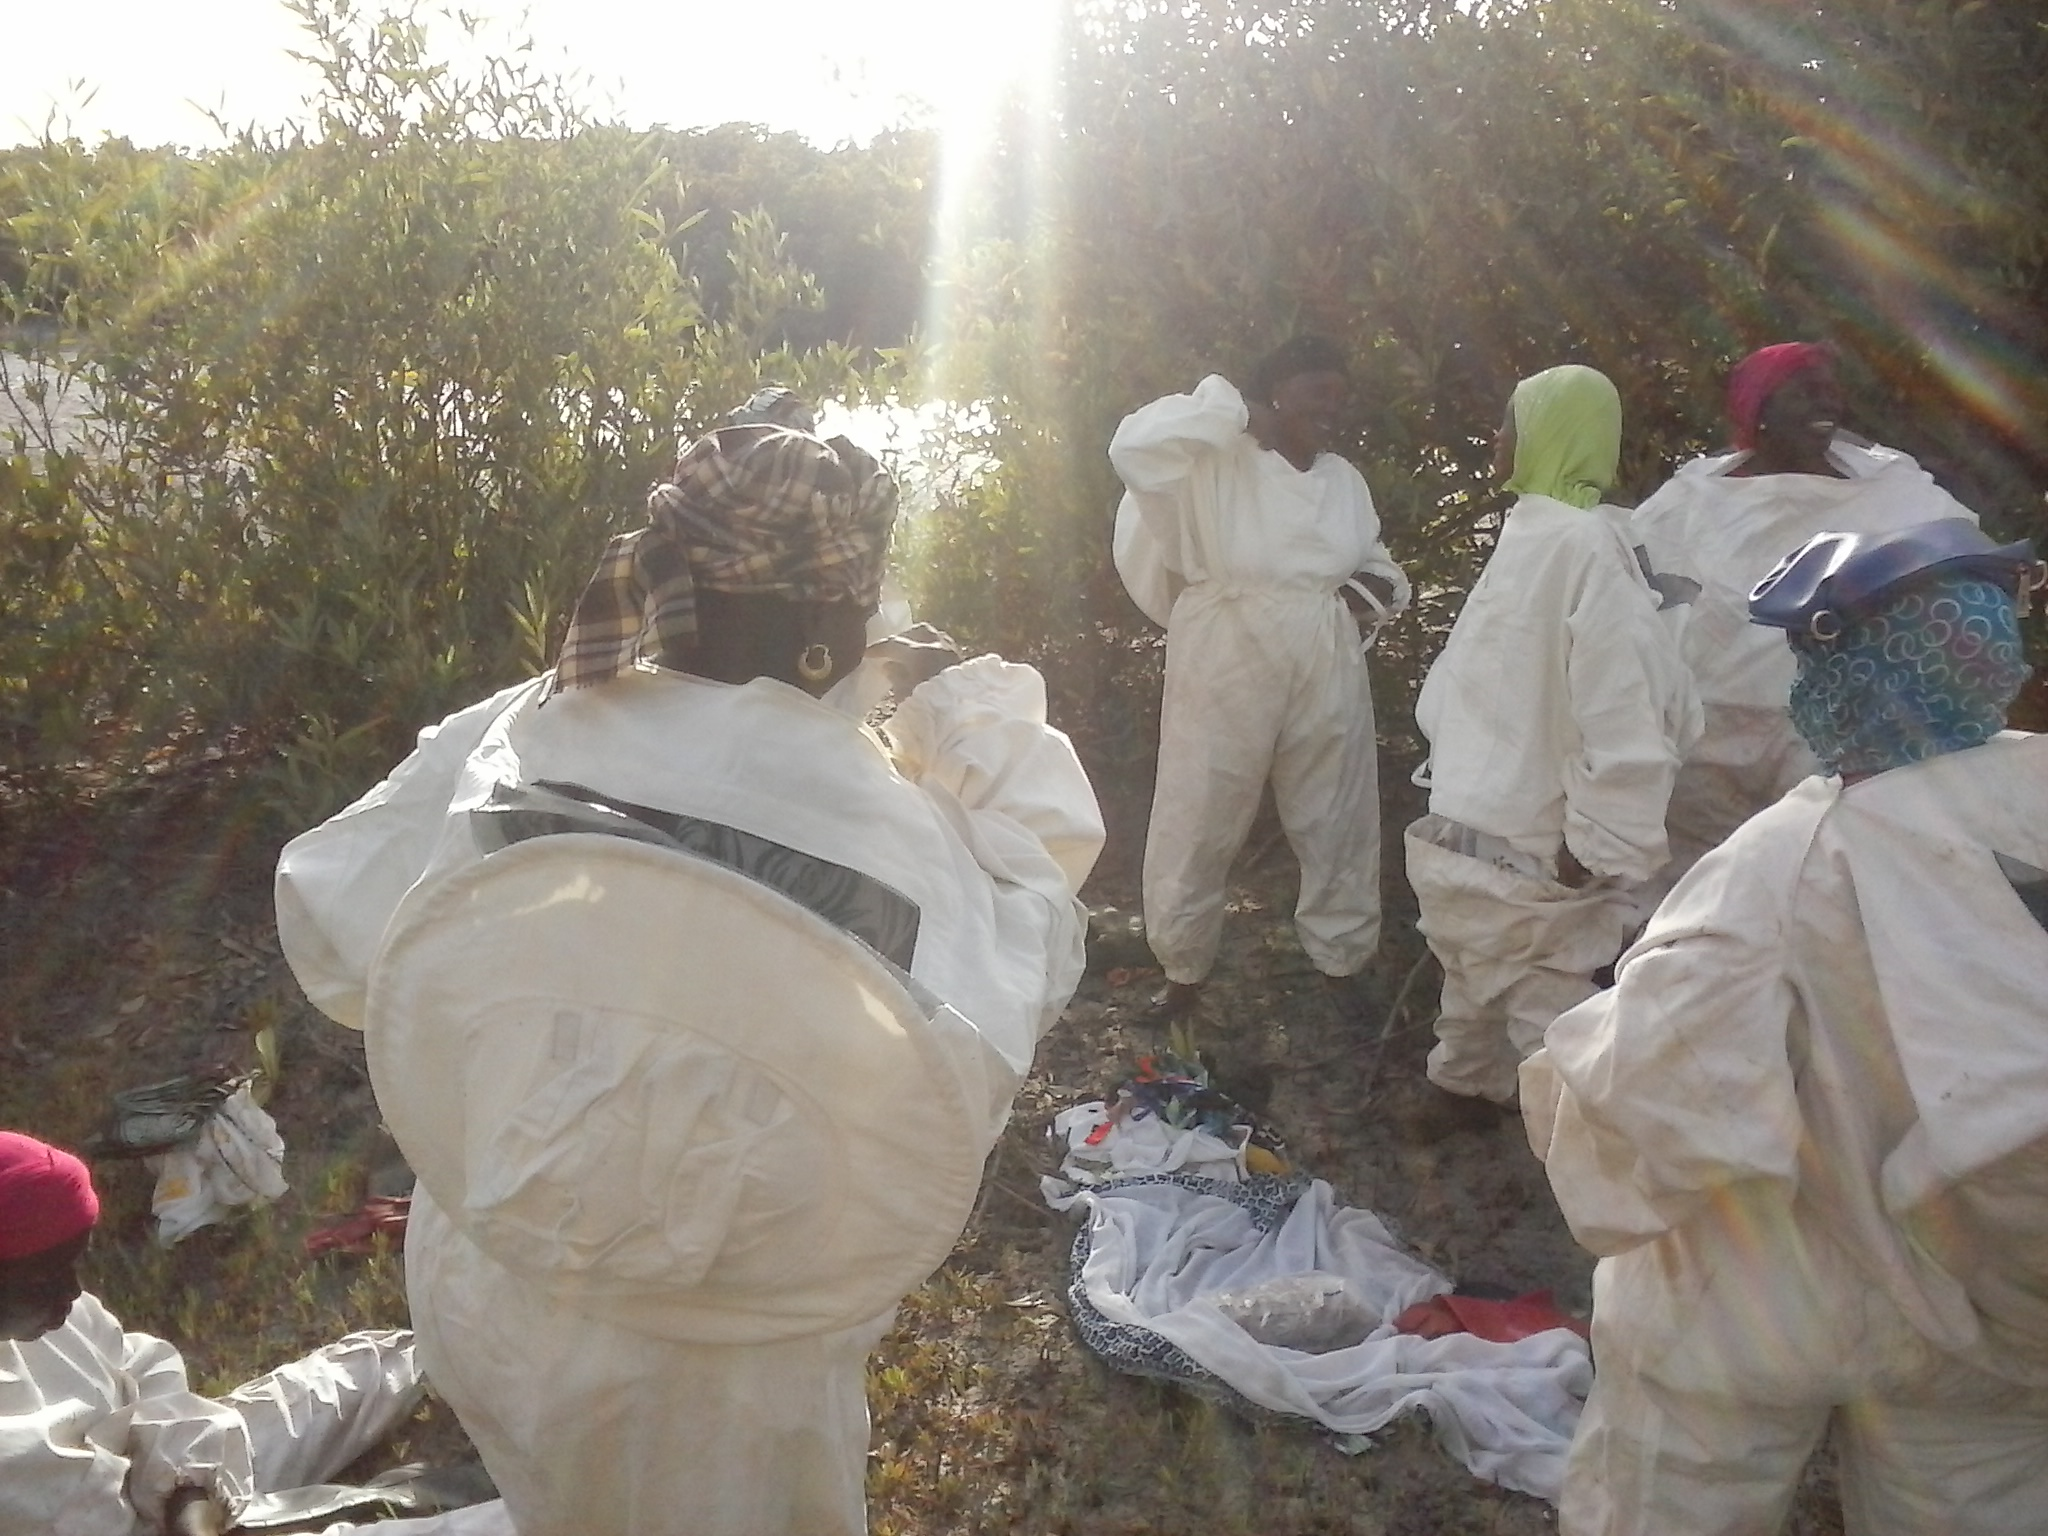 Missirah women beekeepers suiting up for hive inspections. Photo by Erin Schneider